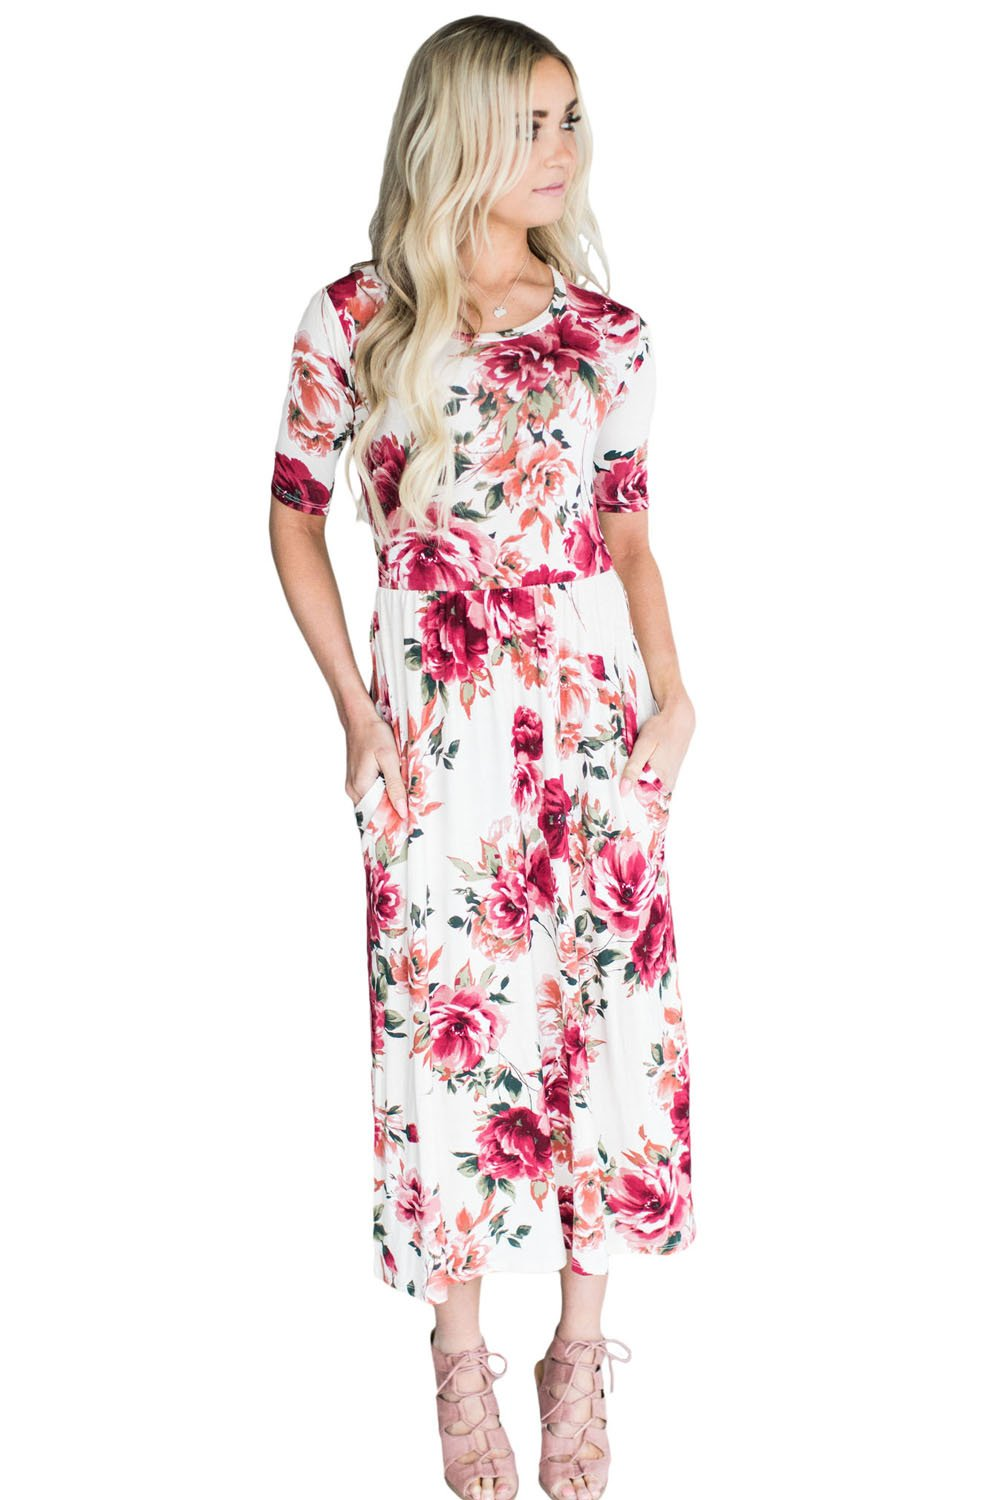 Casual Pocket Design Blooming Floral Dress